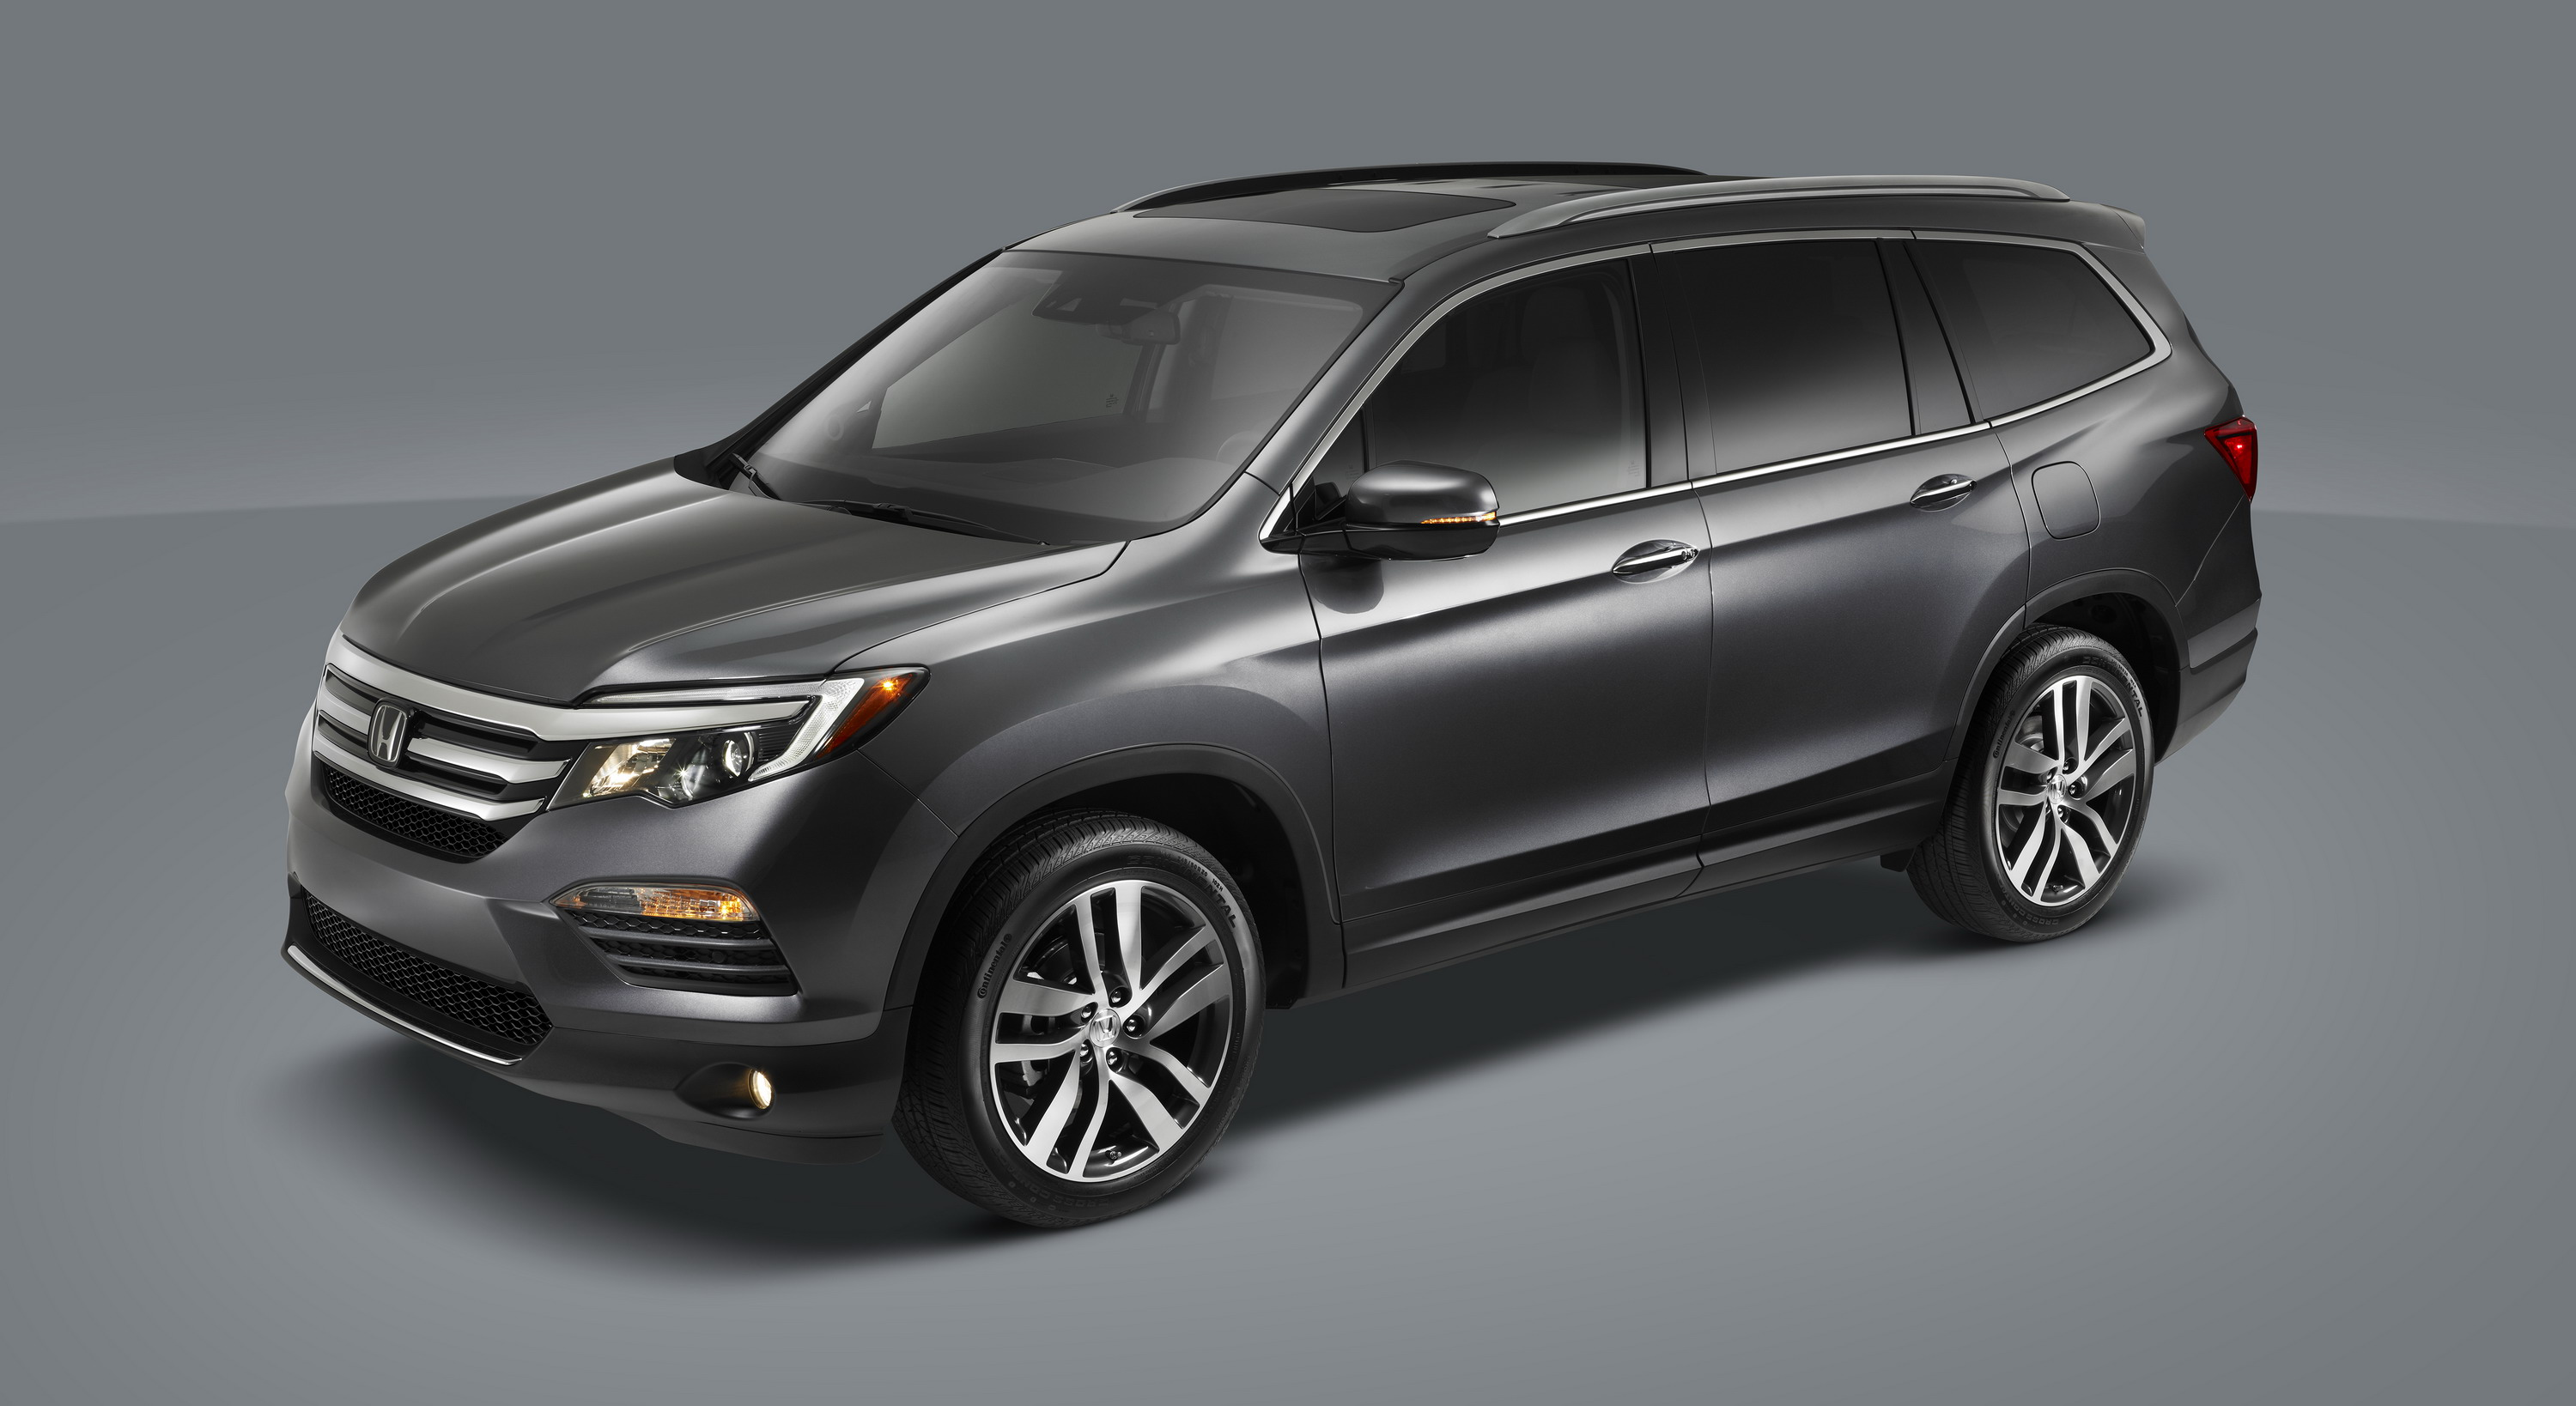 offered be honda accessories of with styling an pilot assortment to news